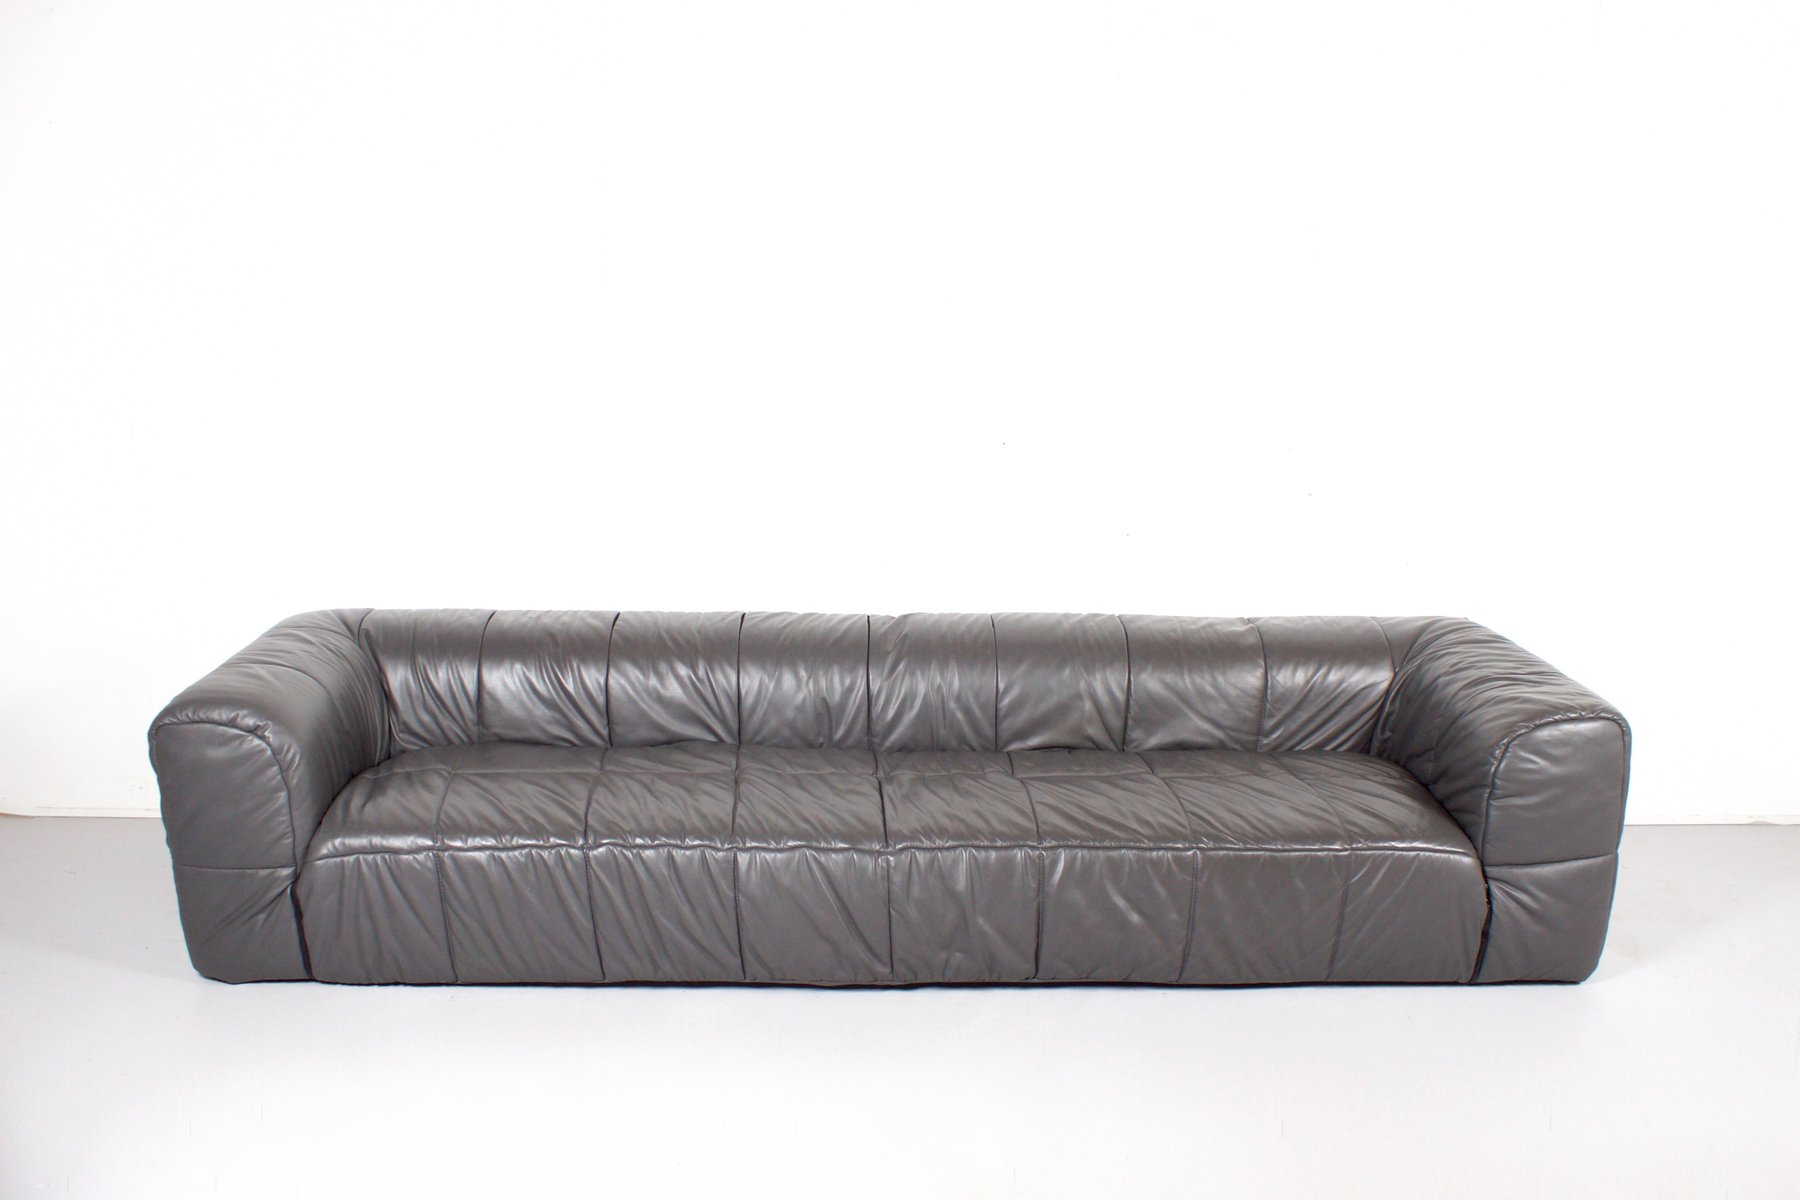 Large Leather Strips Sofa By Cini Boeri For Arflex 1968 For Sale At Pamono